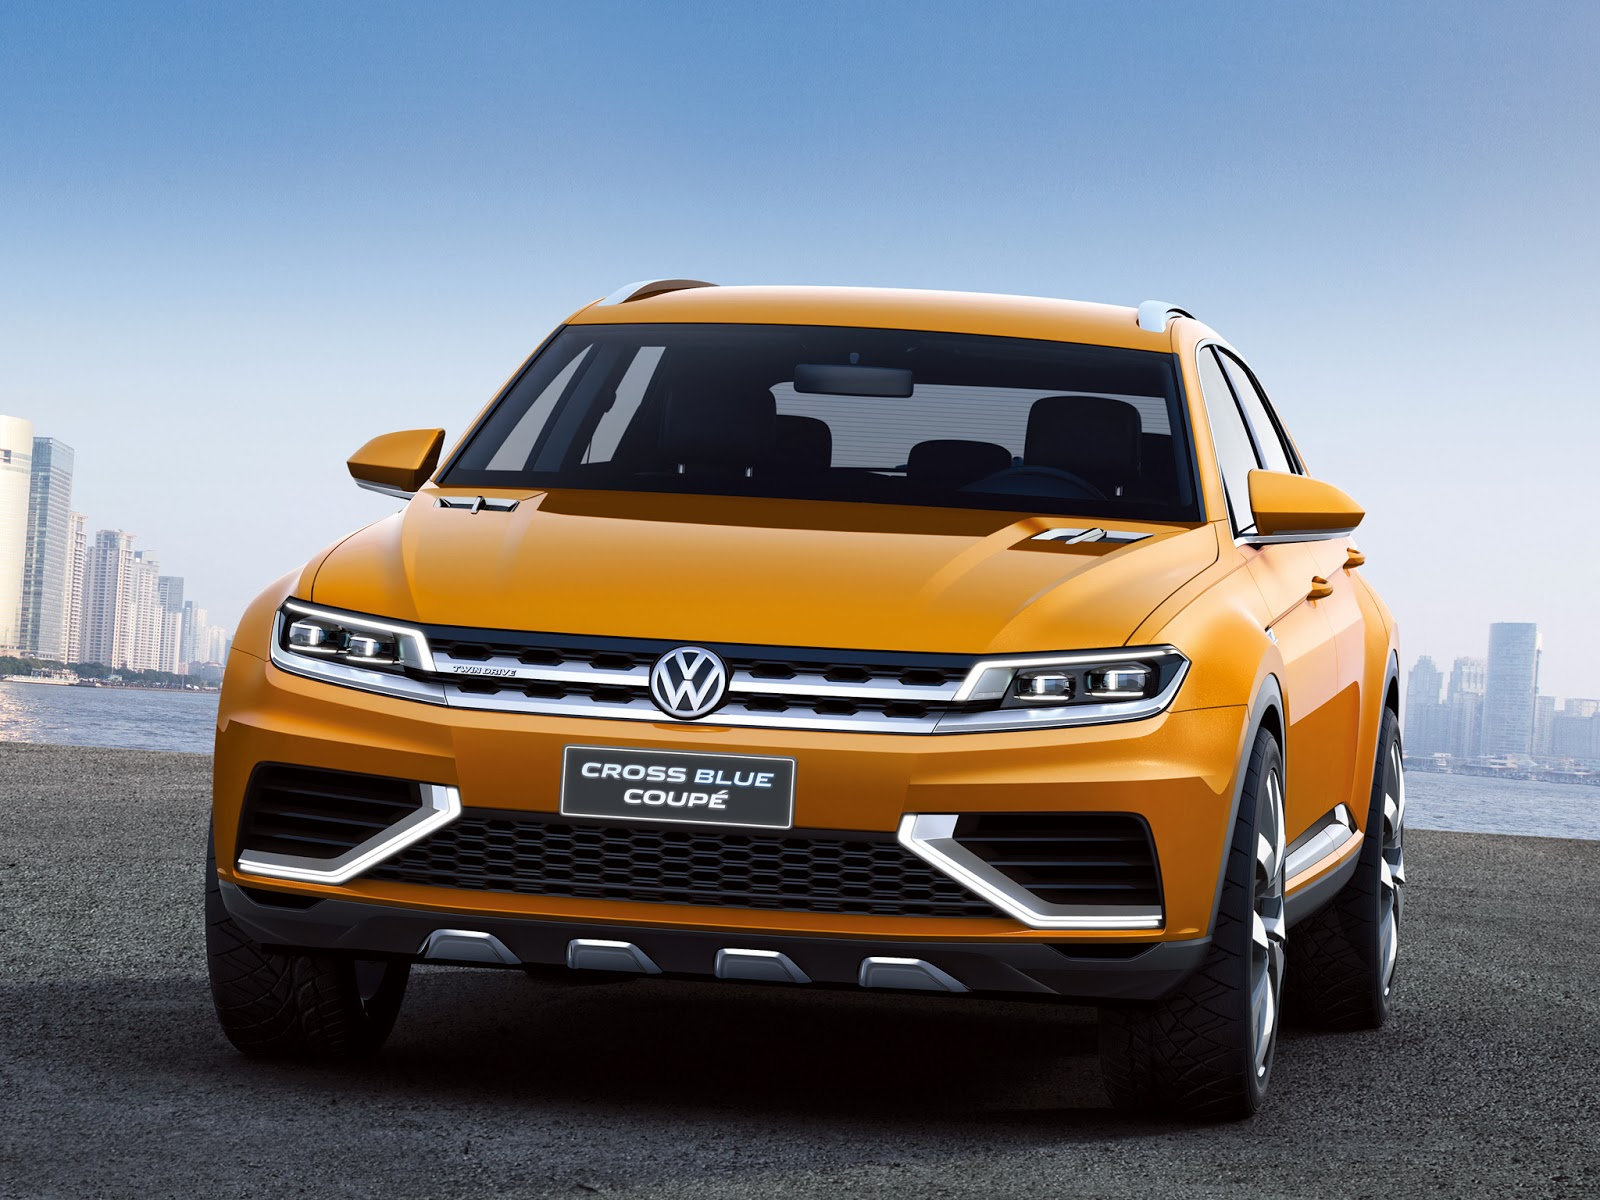 2016 volkswagen crossblue coupe ready to launch mycarzilla. Black Bedroom Furniture Sets. Home Design Ideas